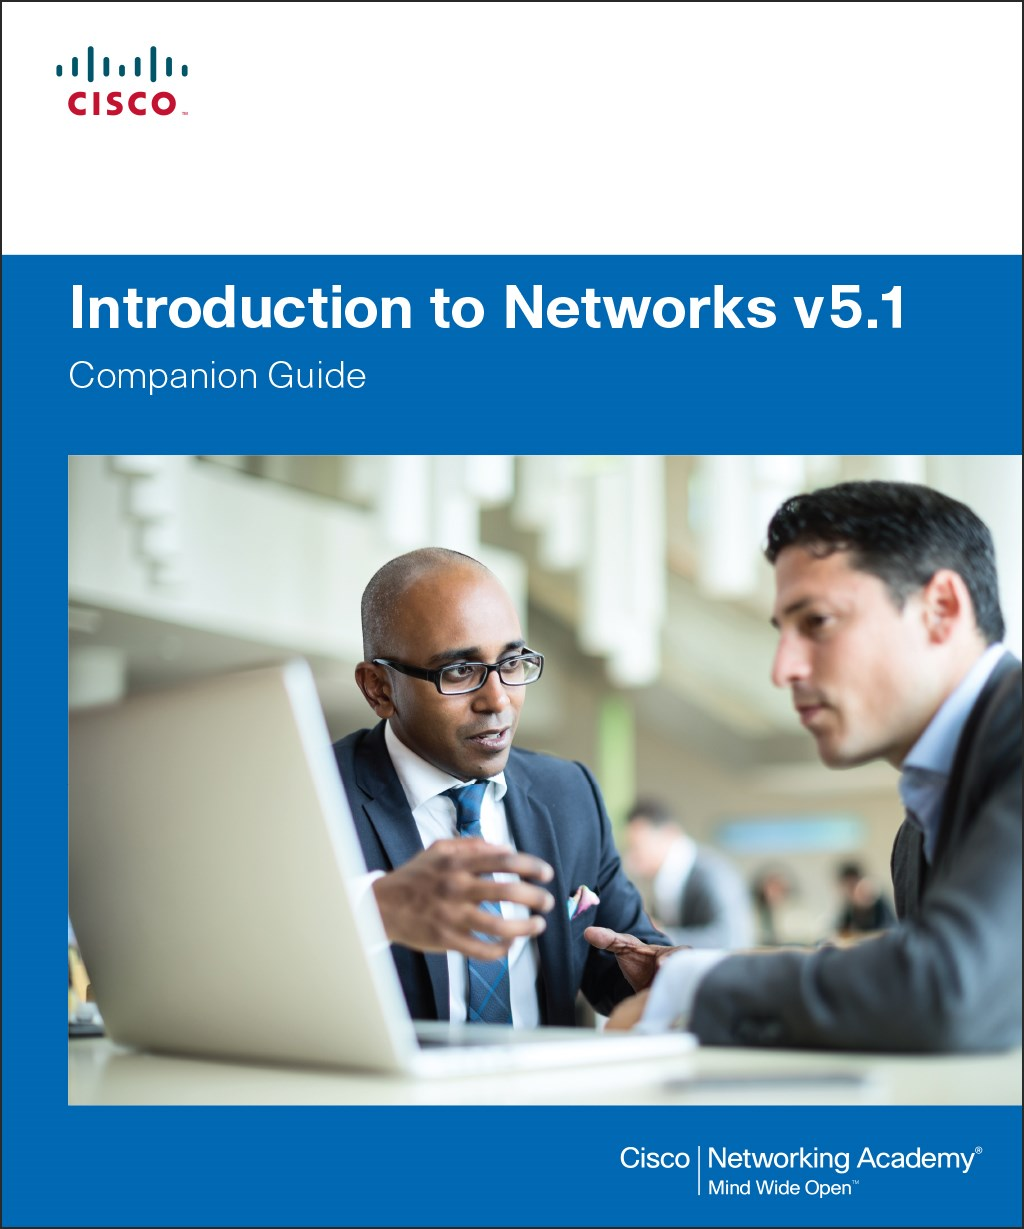 Introduction to Networks Companion Guide v5.1